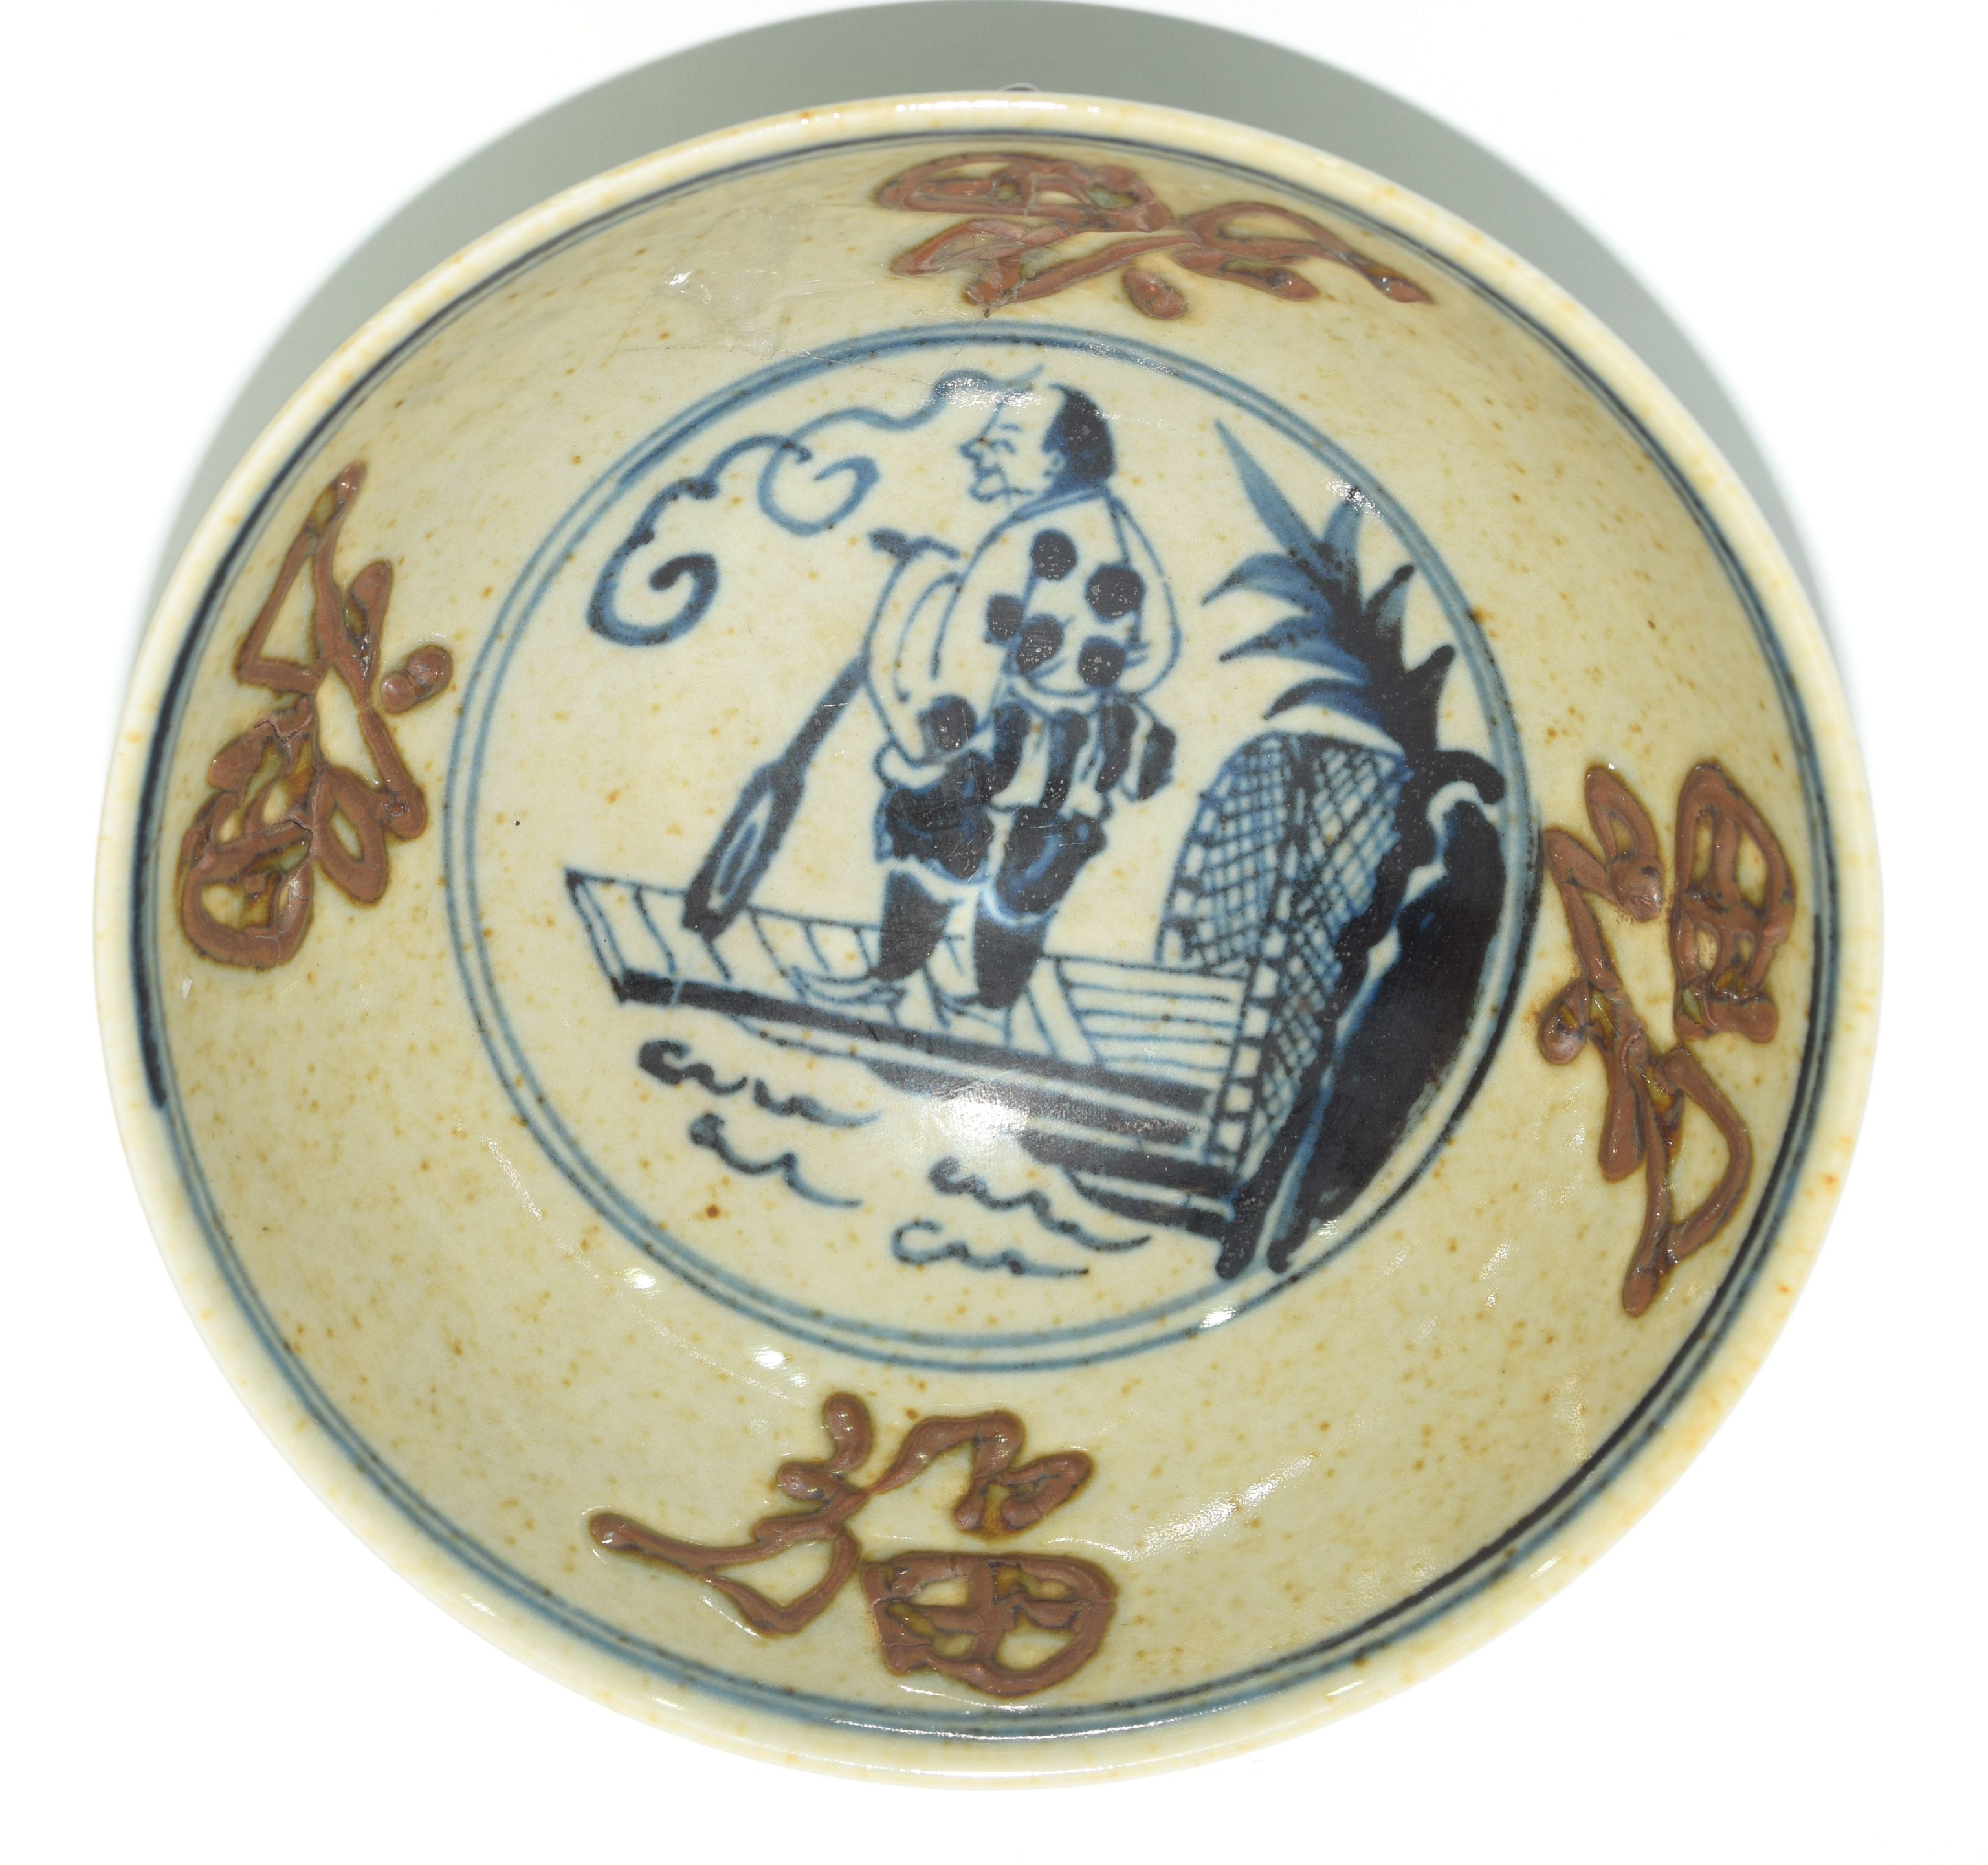 19th century Chinese porcelain bowl - Image 8 of 17